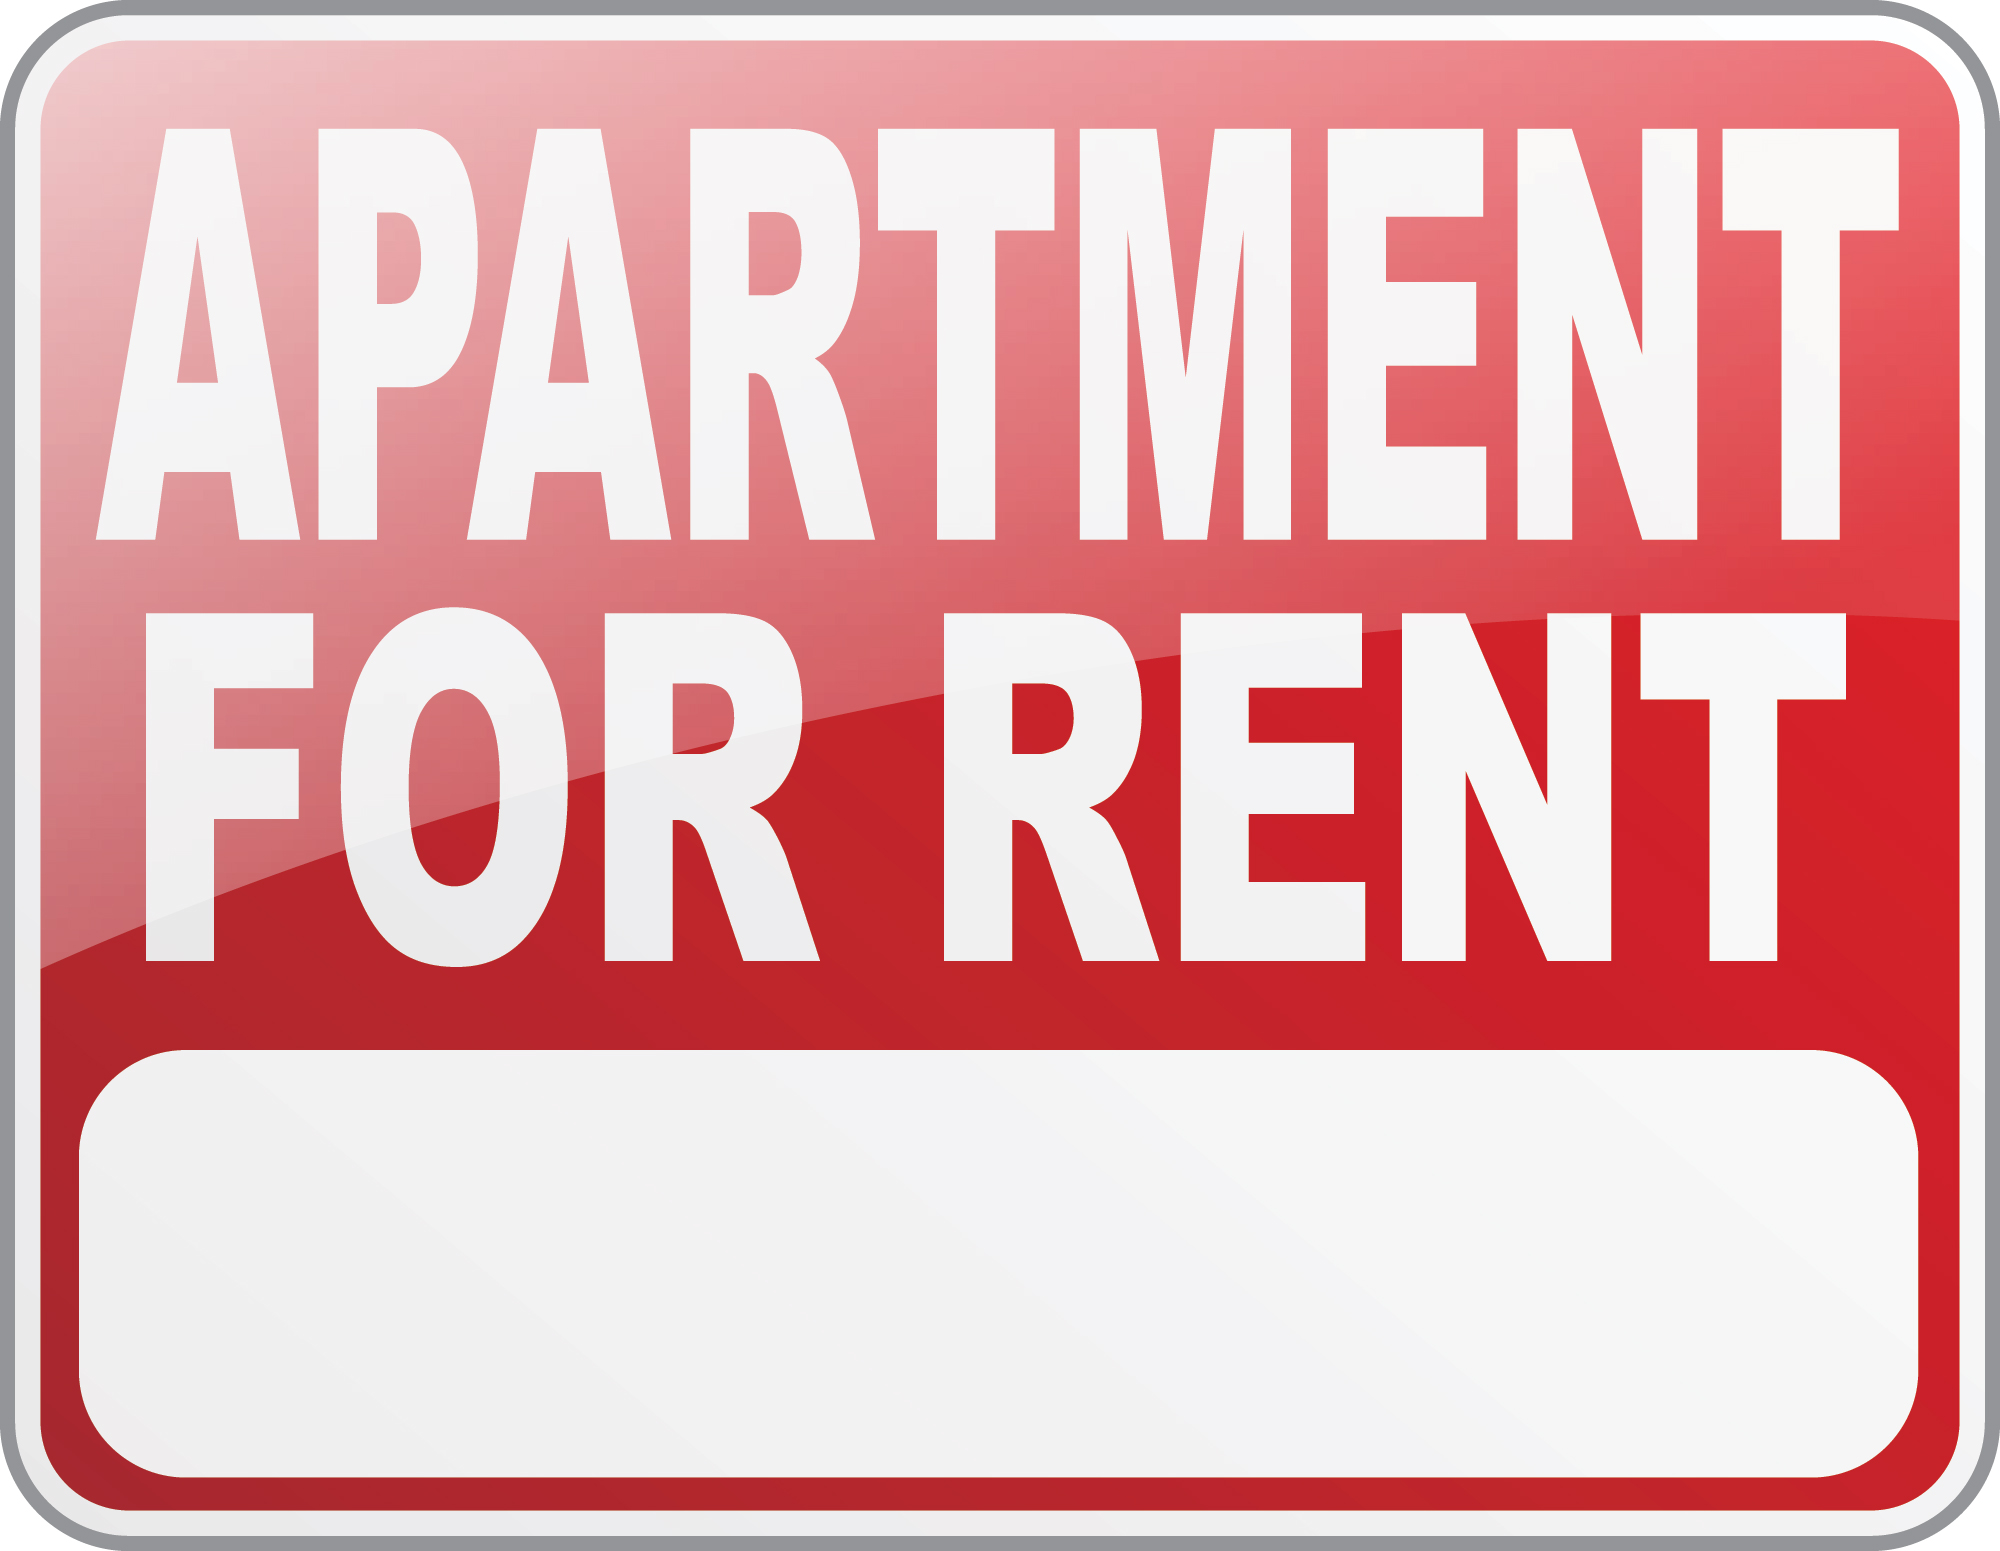 Should One Rent an Apartment Or Own a Home?